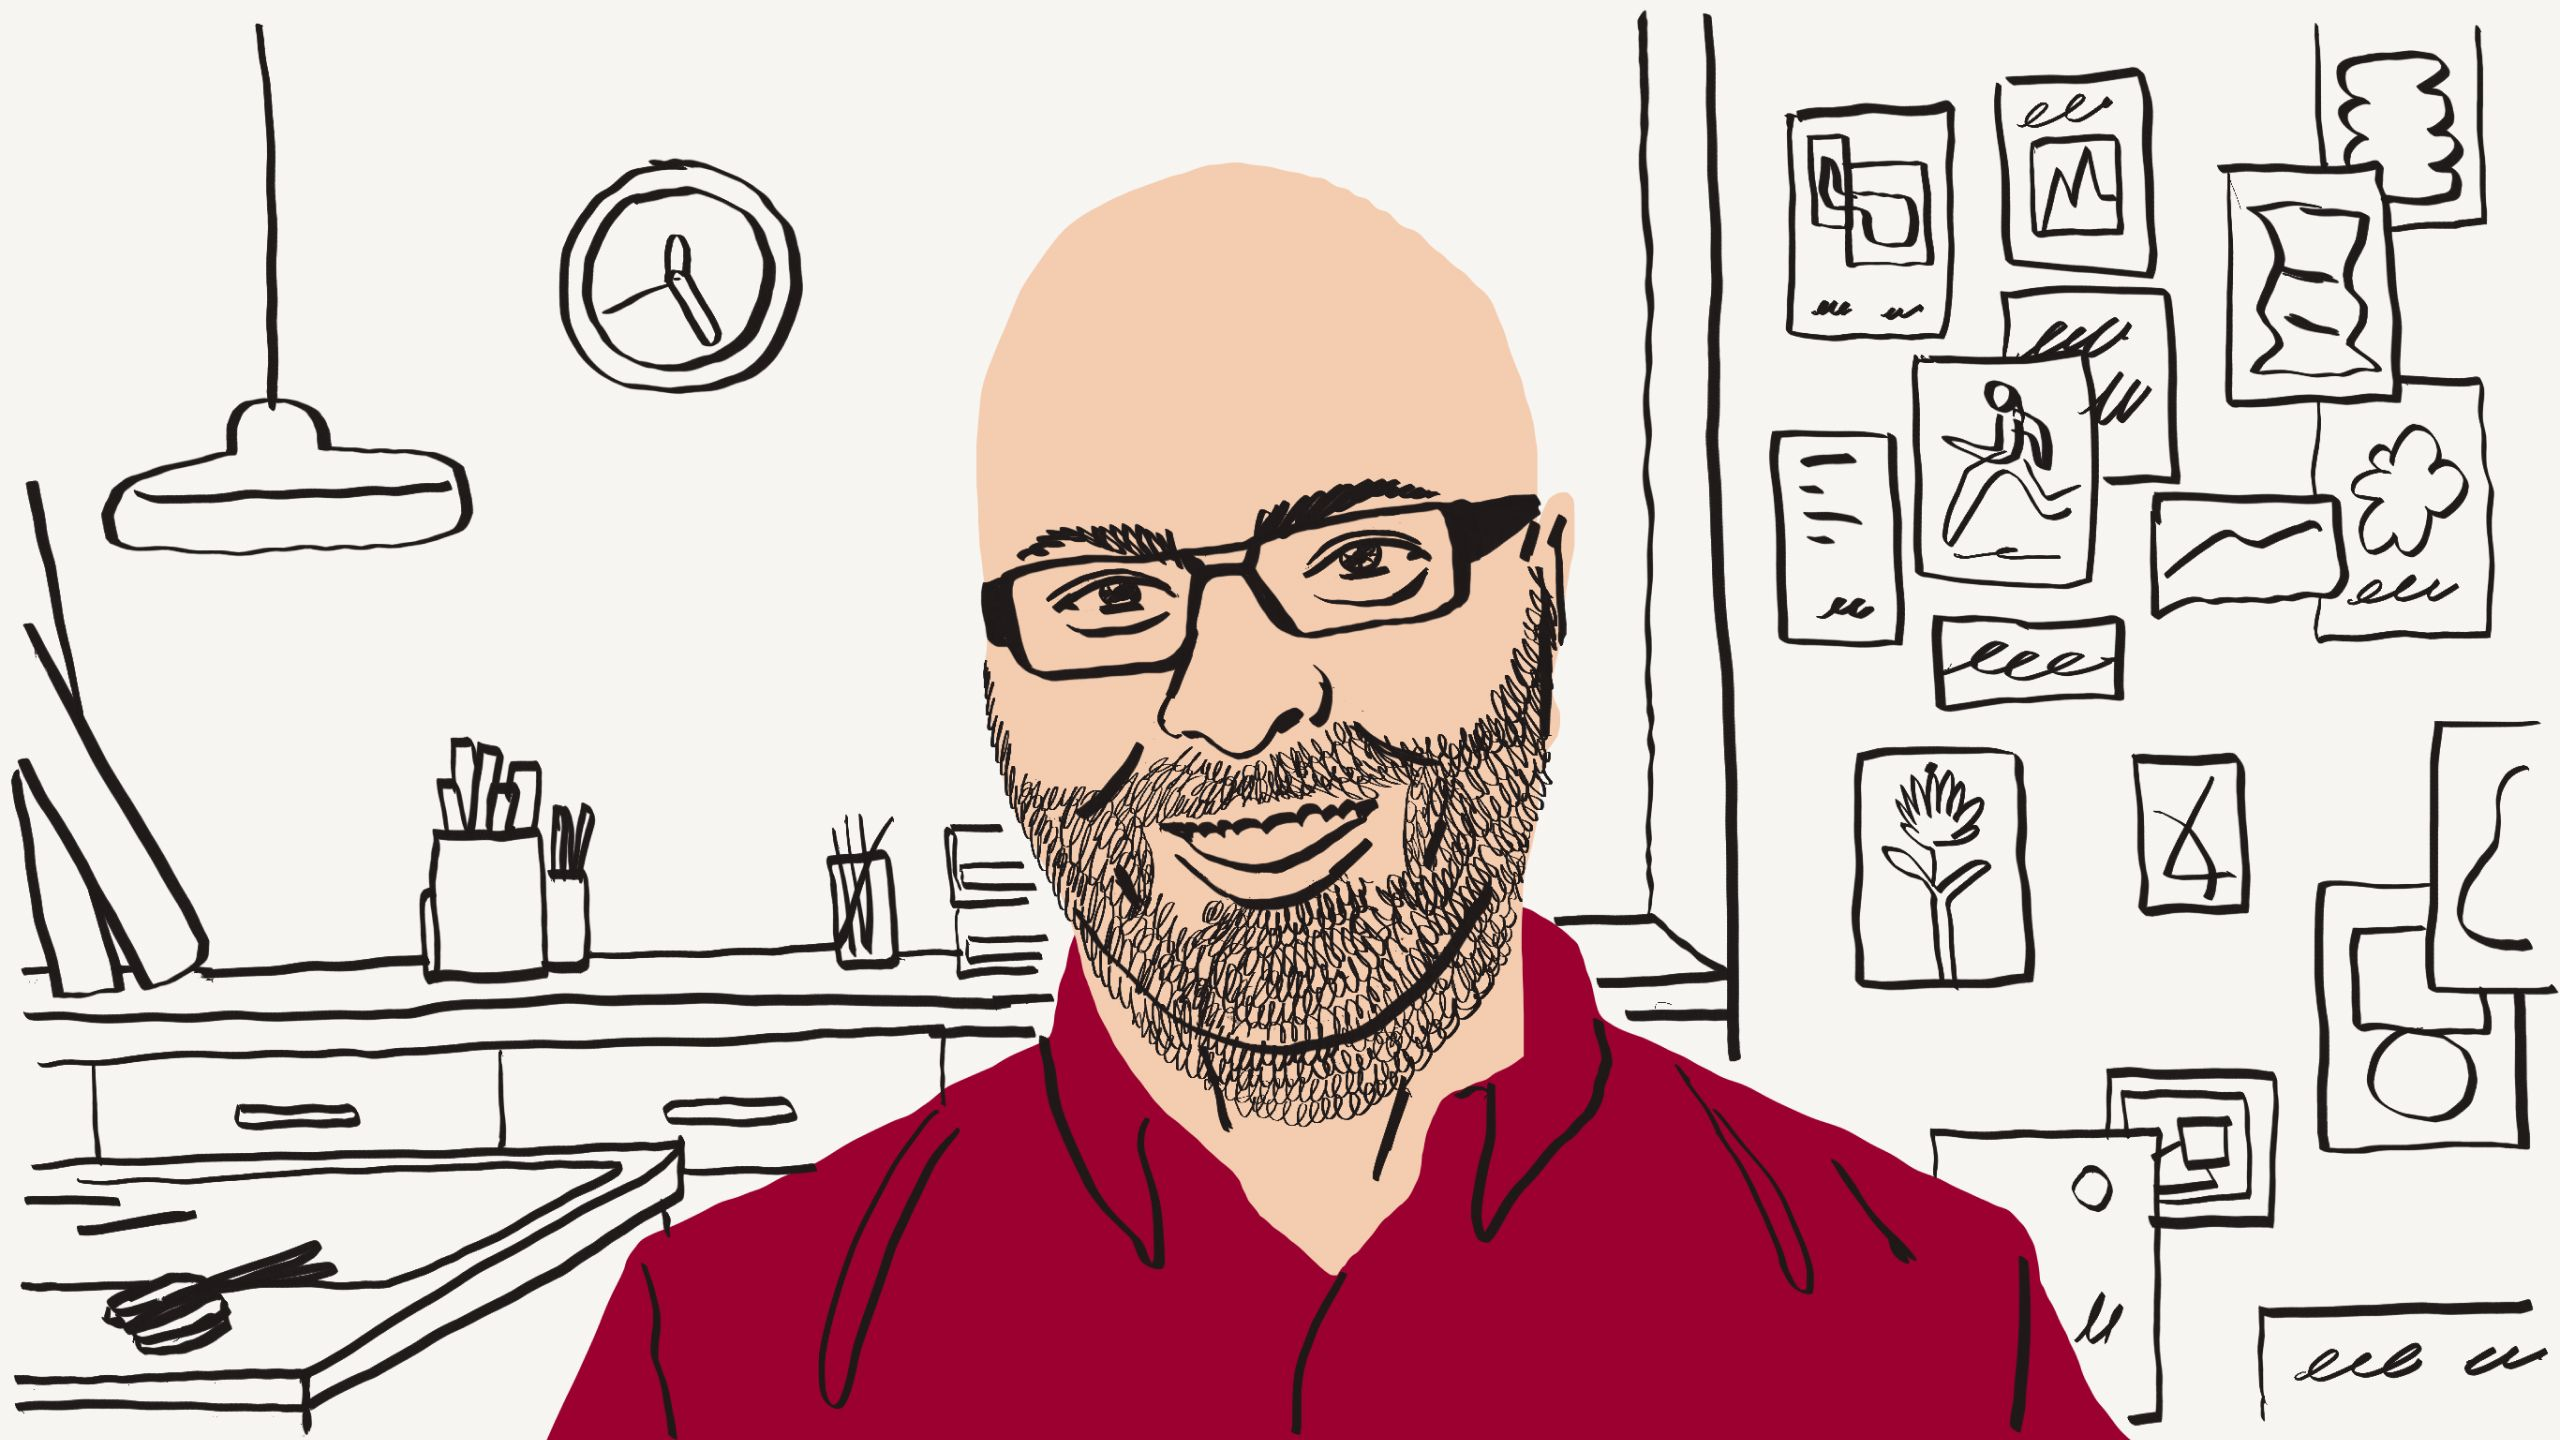 Illustration of a person with glasses wearing a red shirt in front of a desk